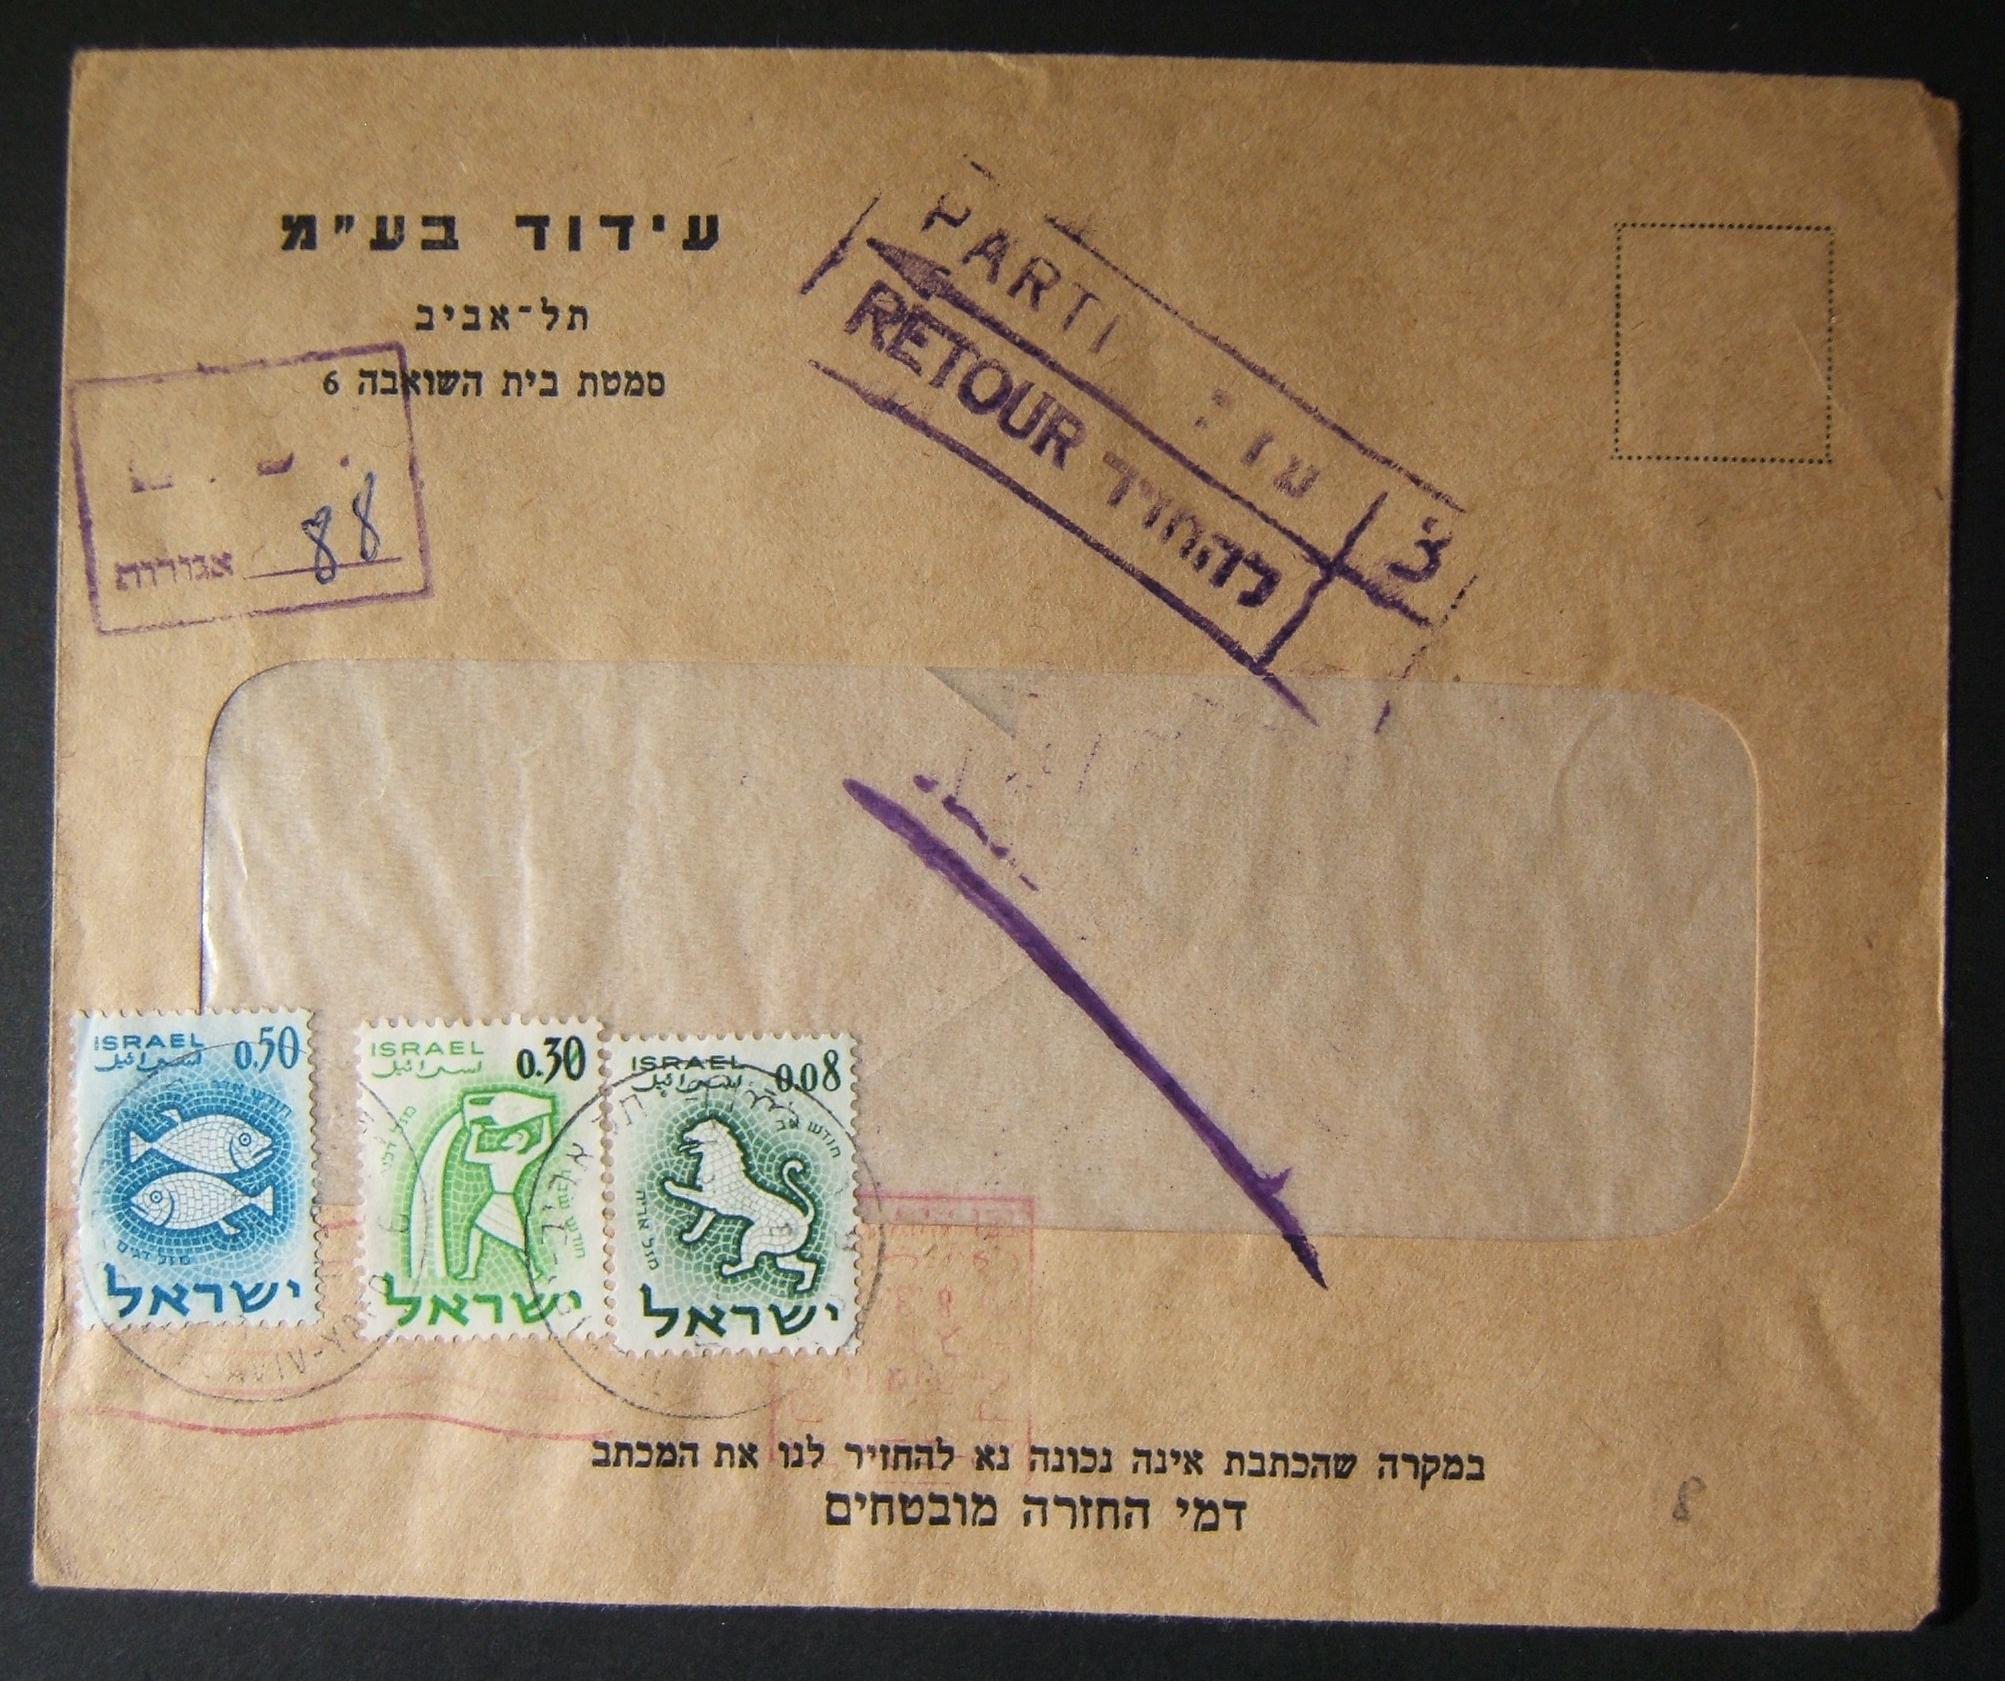 1964 domestic 'top of the pile' taxed franking: 8-3-64 printed matter commercial cover ex TLV branch of Idud Ltd. franked by machine prepayment at the DO-11 period 8 Ag PM rate but